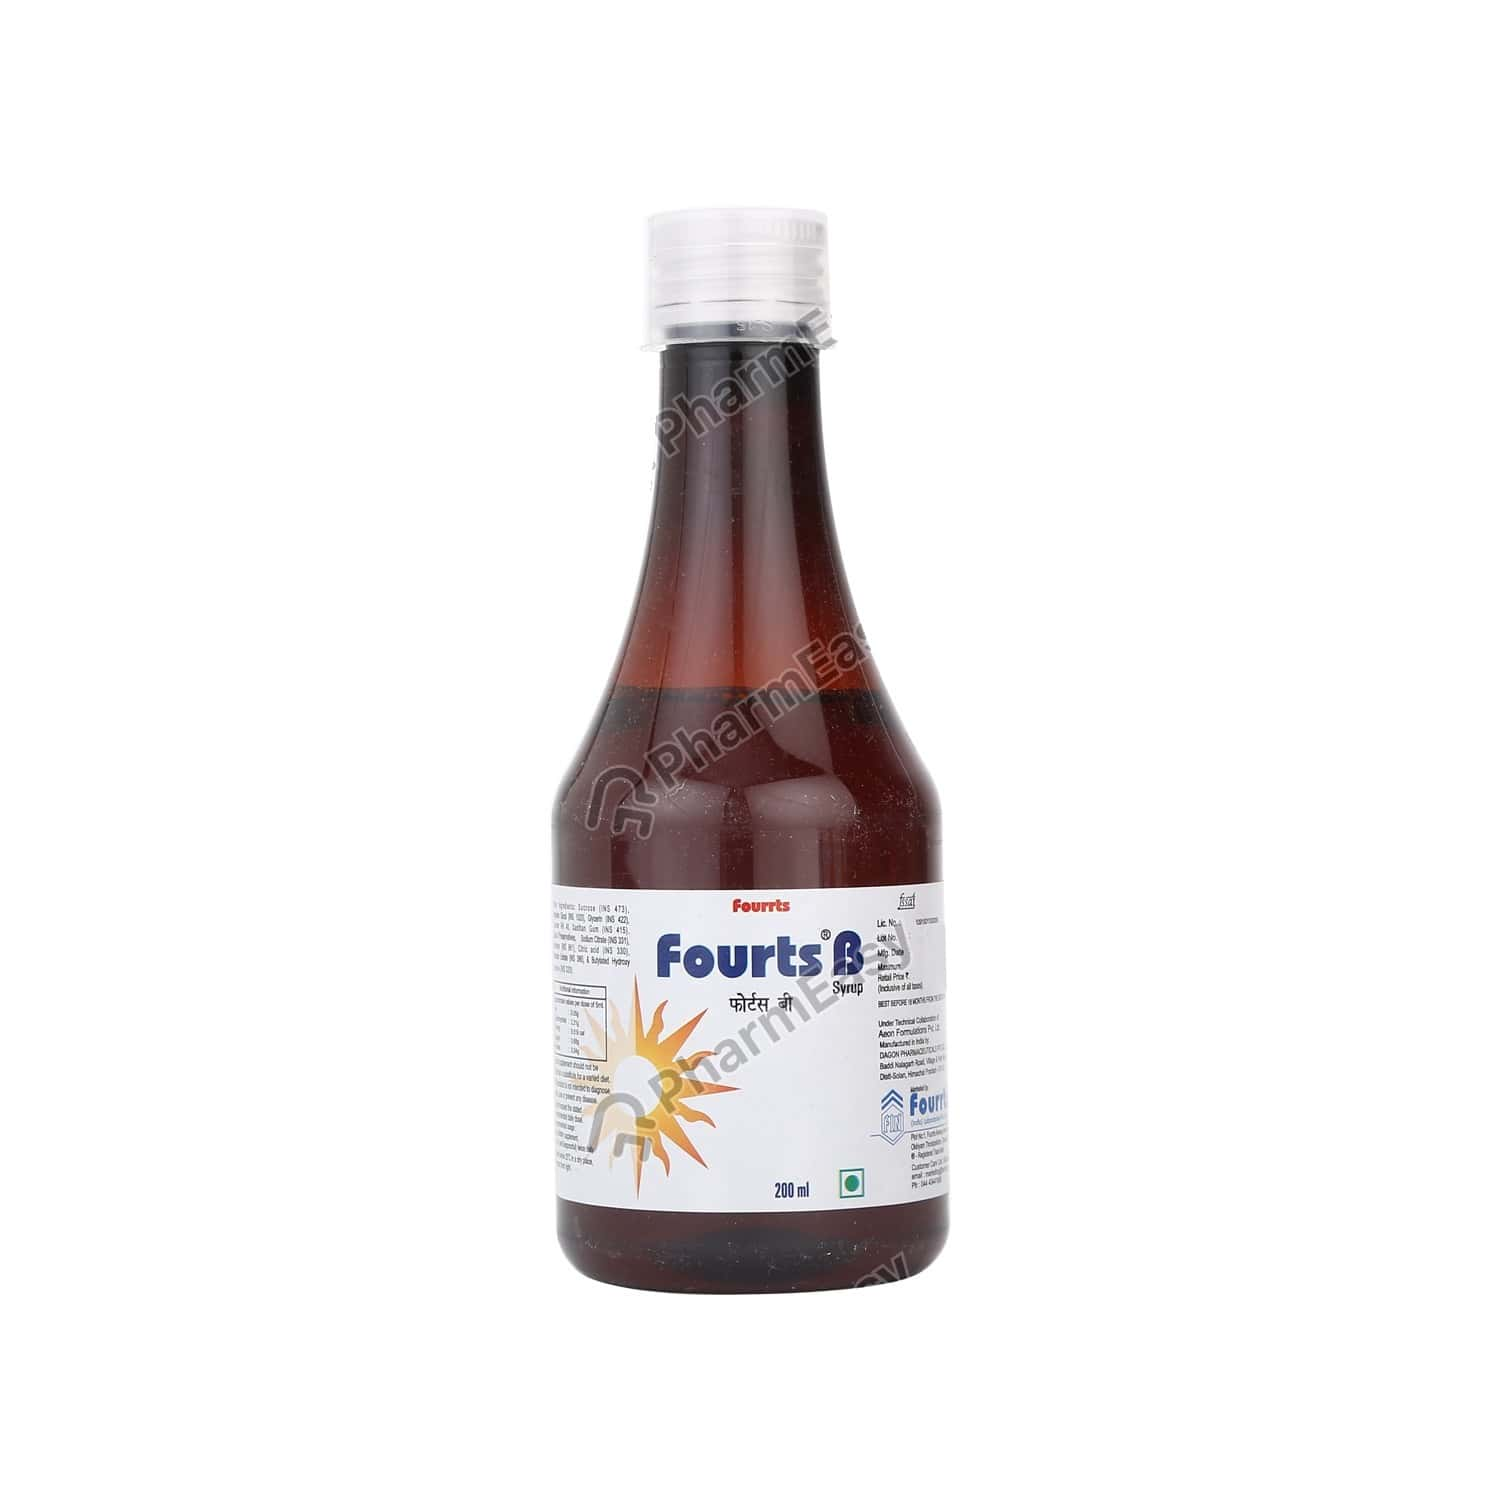 Fourts B Bottle Of 200ml Syrup